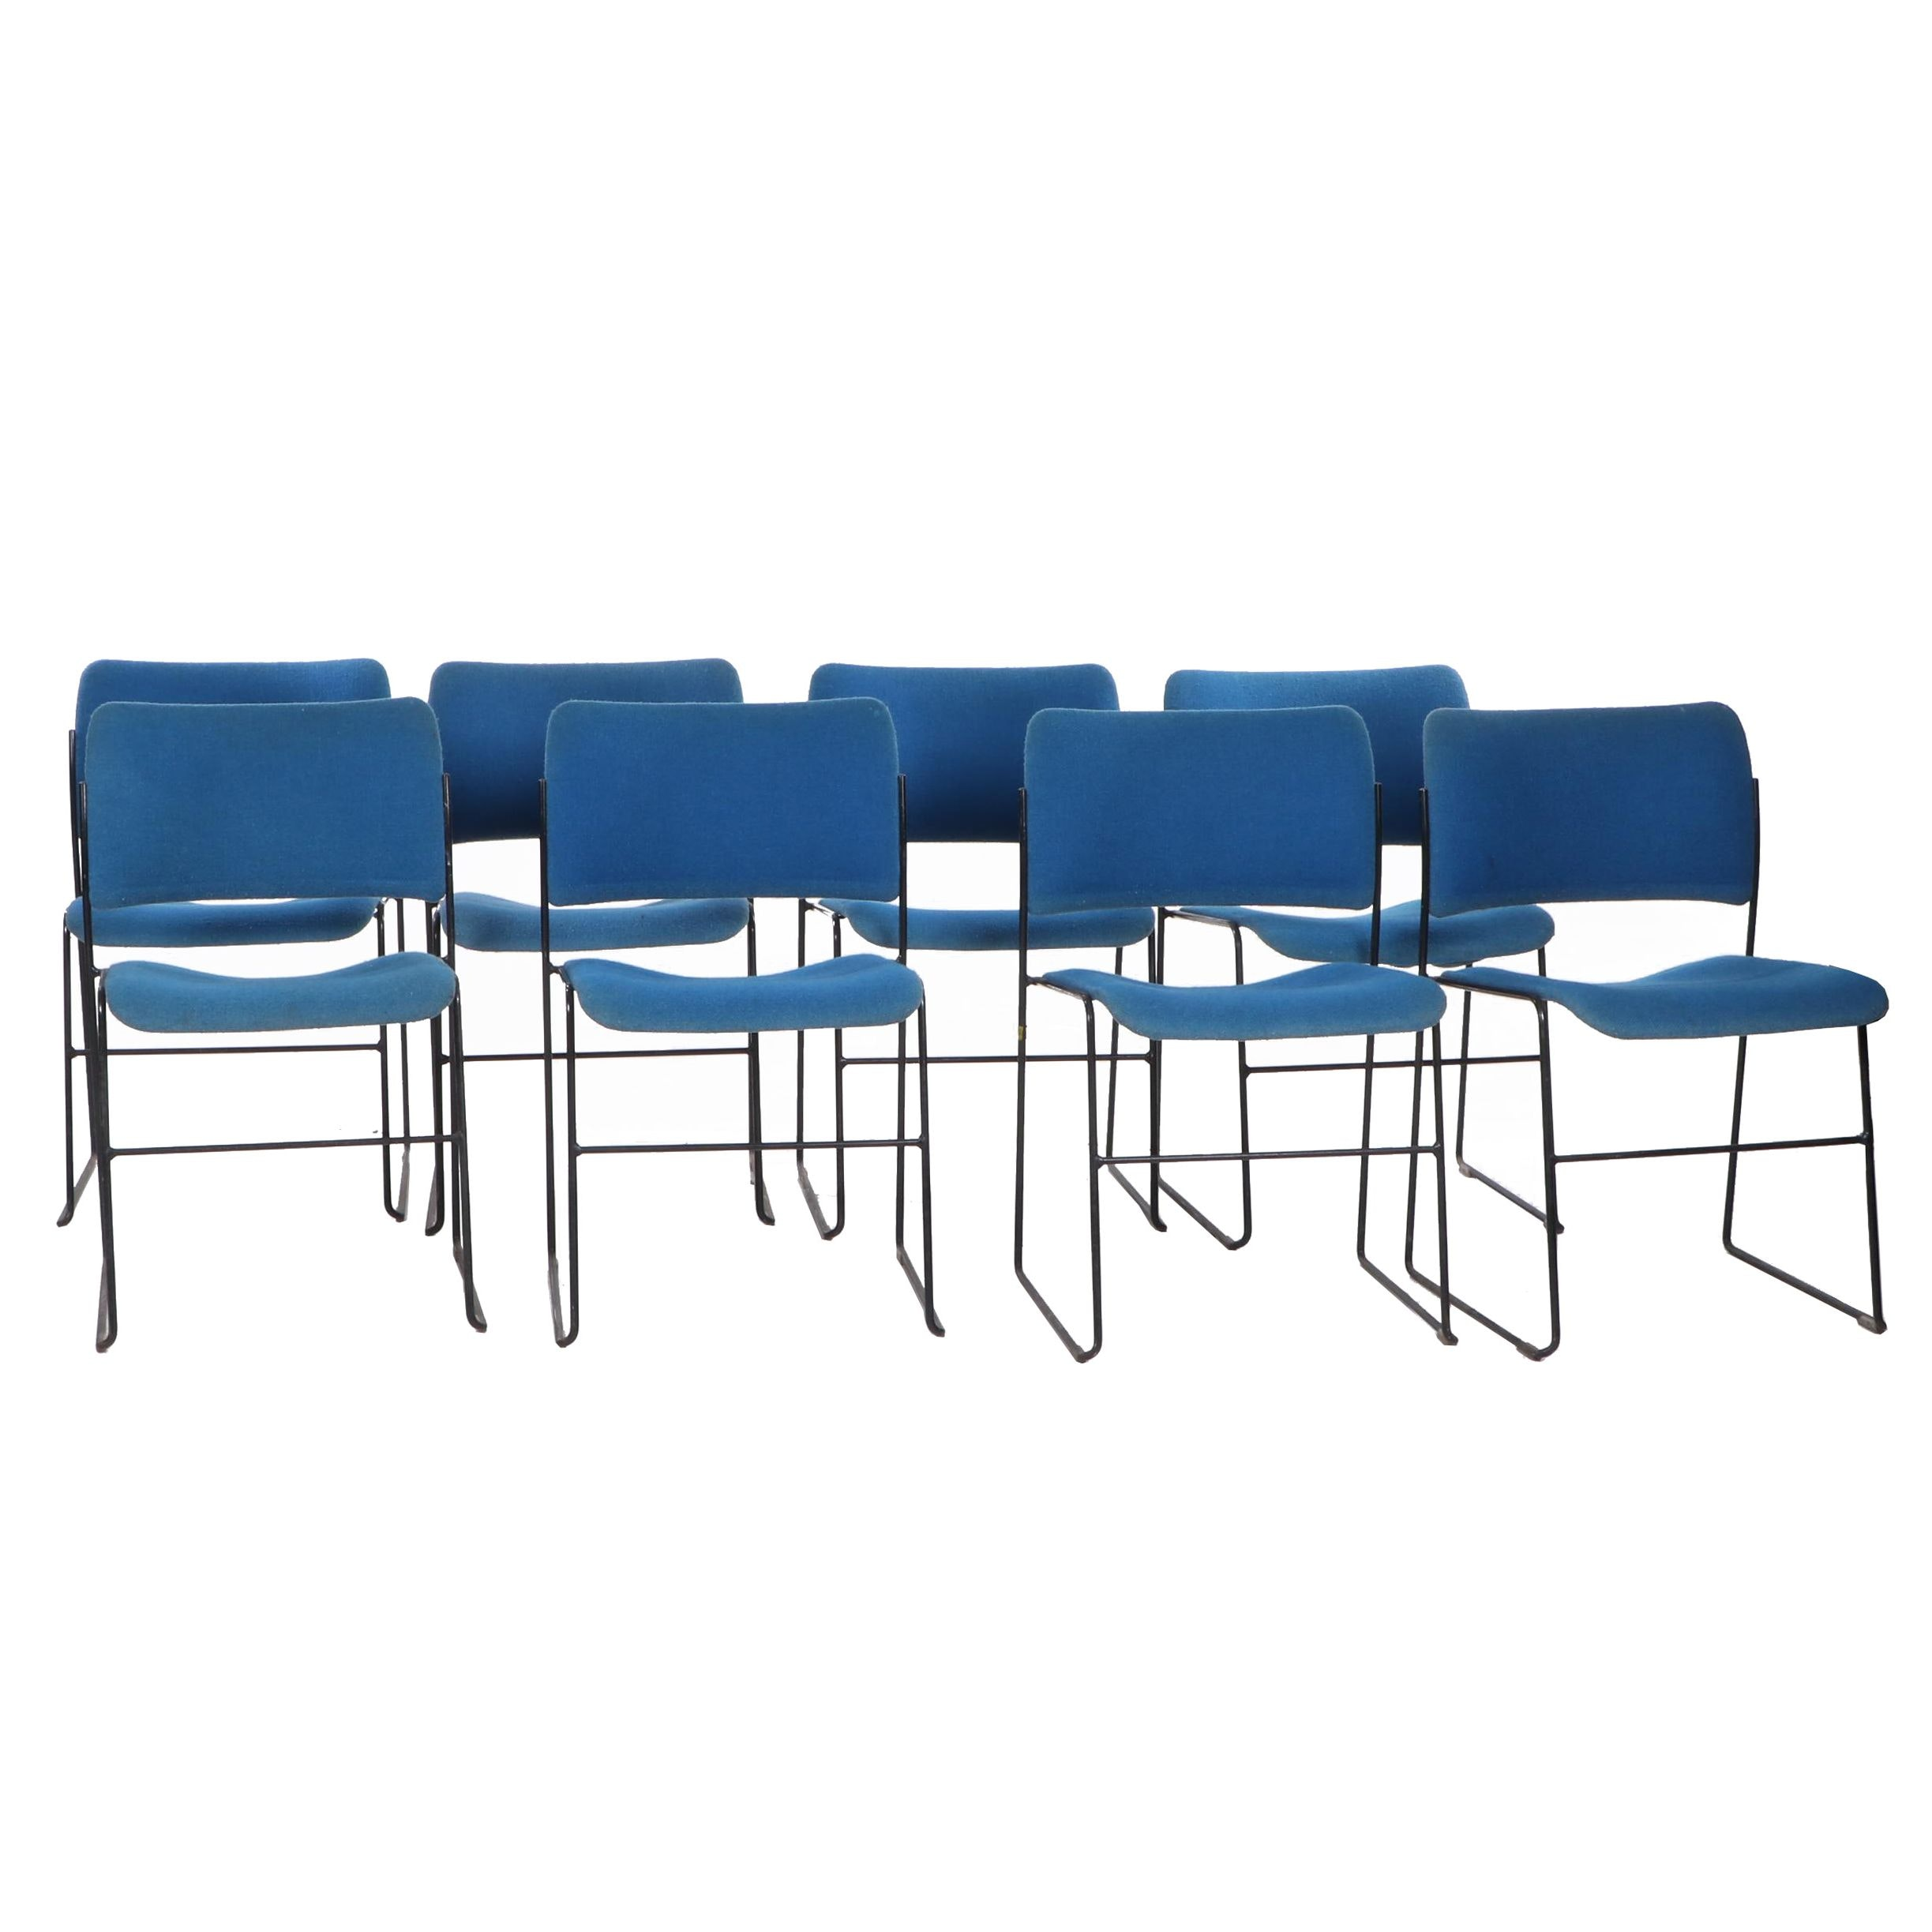 Set of Eight David Rowland Modern Upholstered Steel Chairs by GF Furniture